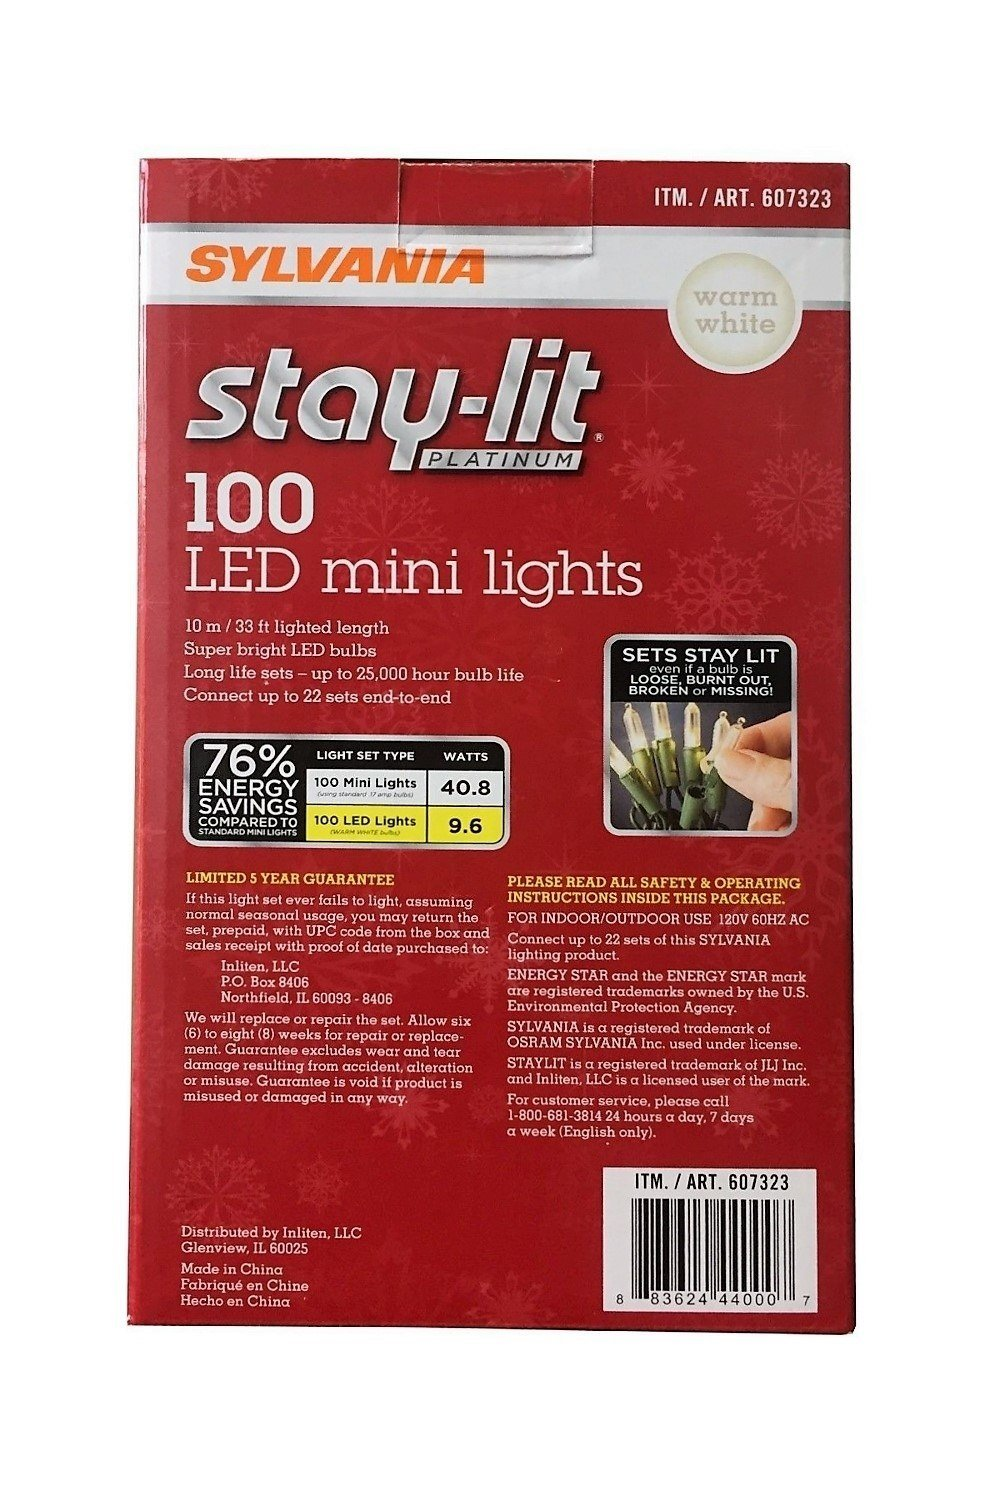 Sylvania Stay-Lit Platinum LED Indoor//Outdoor Christmas String Lights 100ct mini lights, Warm White Various Colors /& Sizes